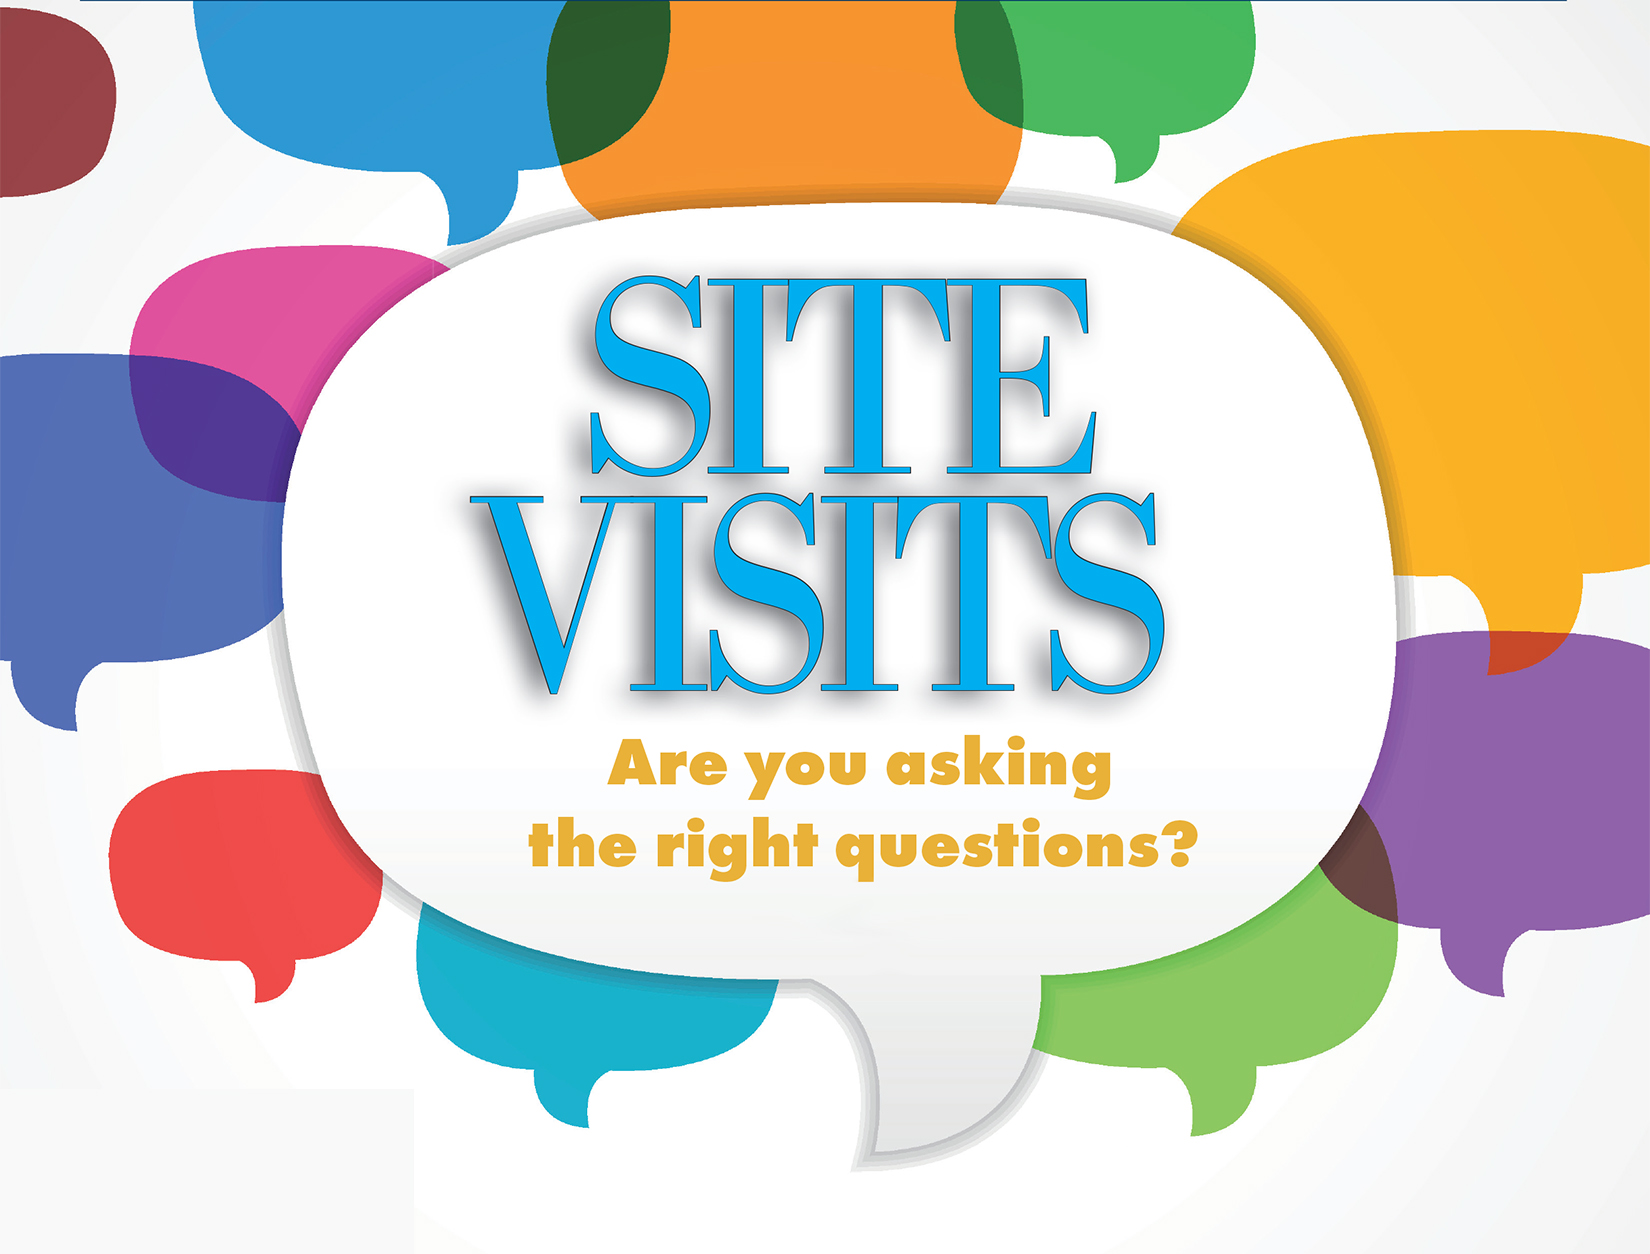 Site visits: Are you asking the right questions?